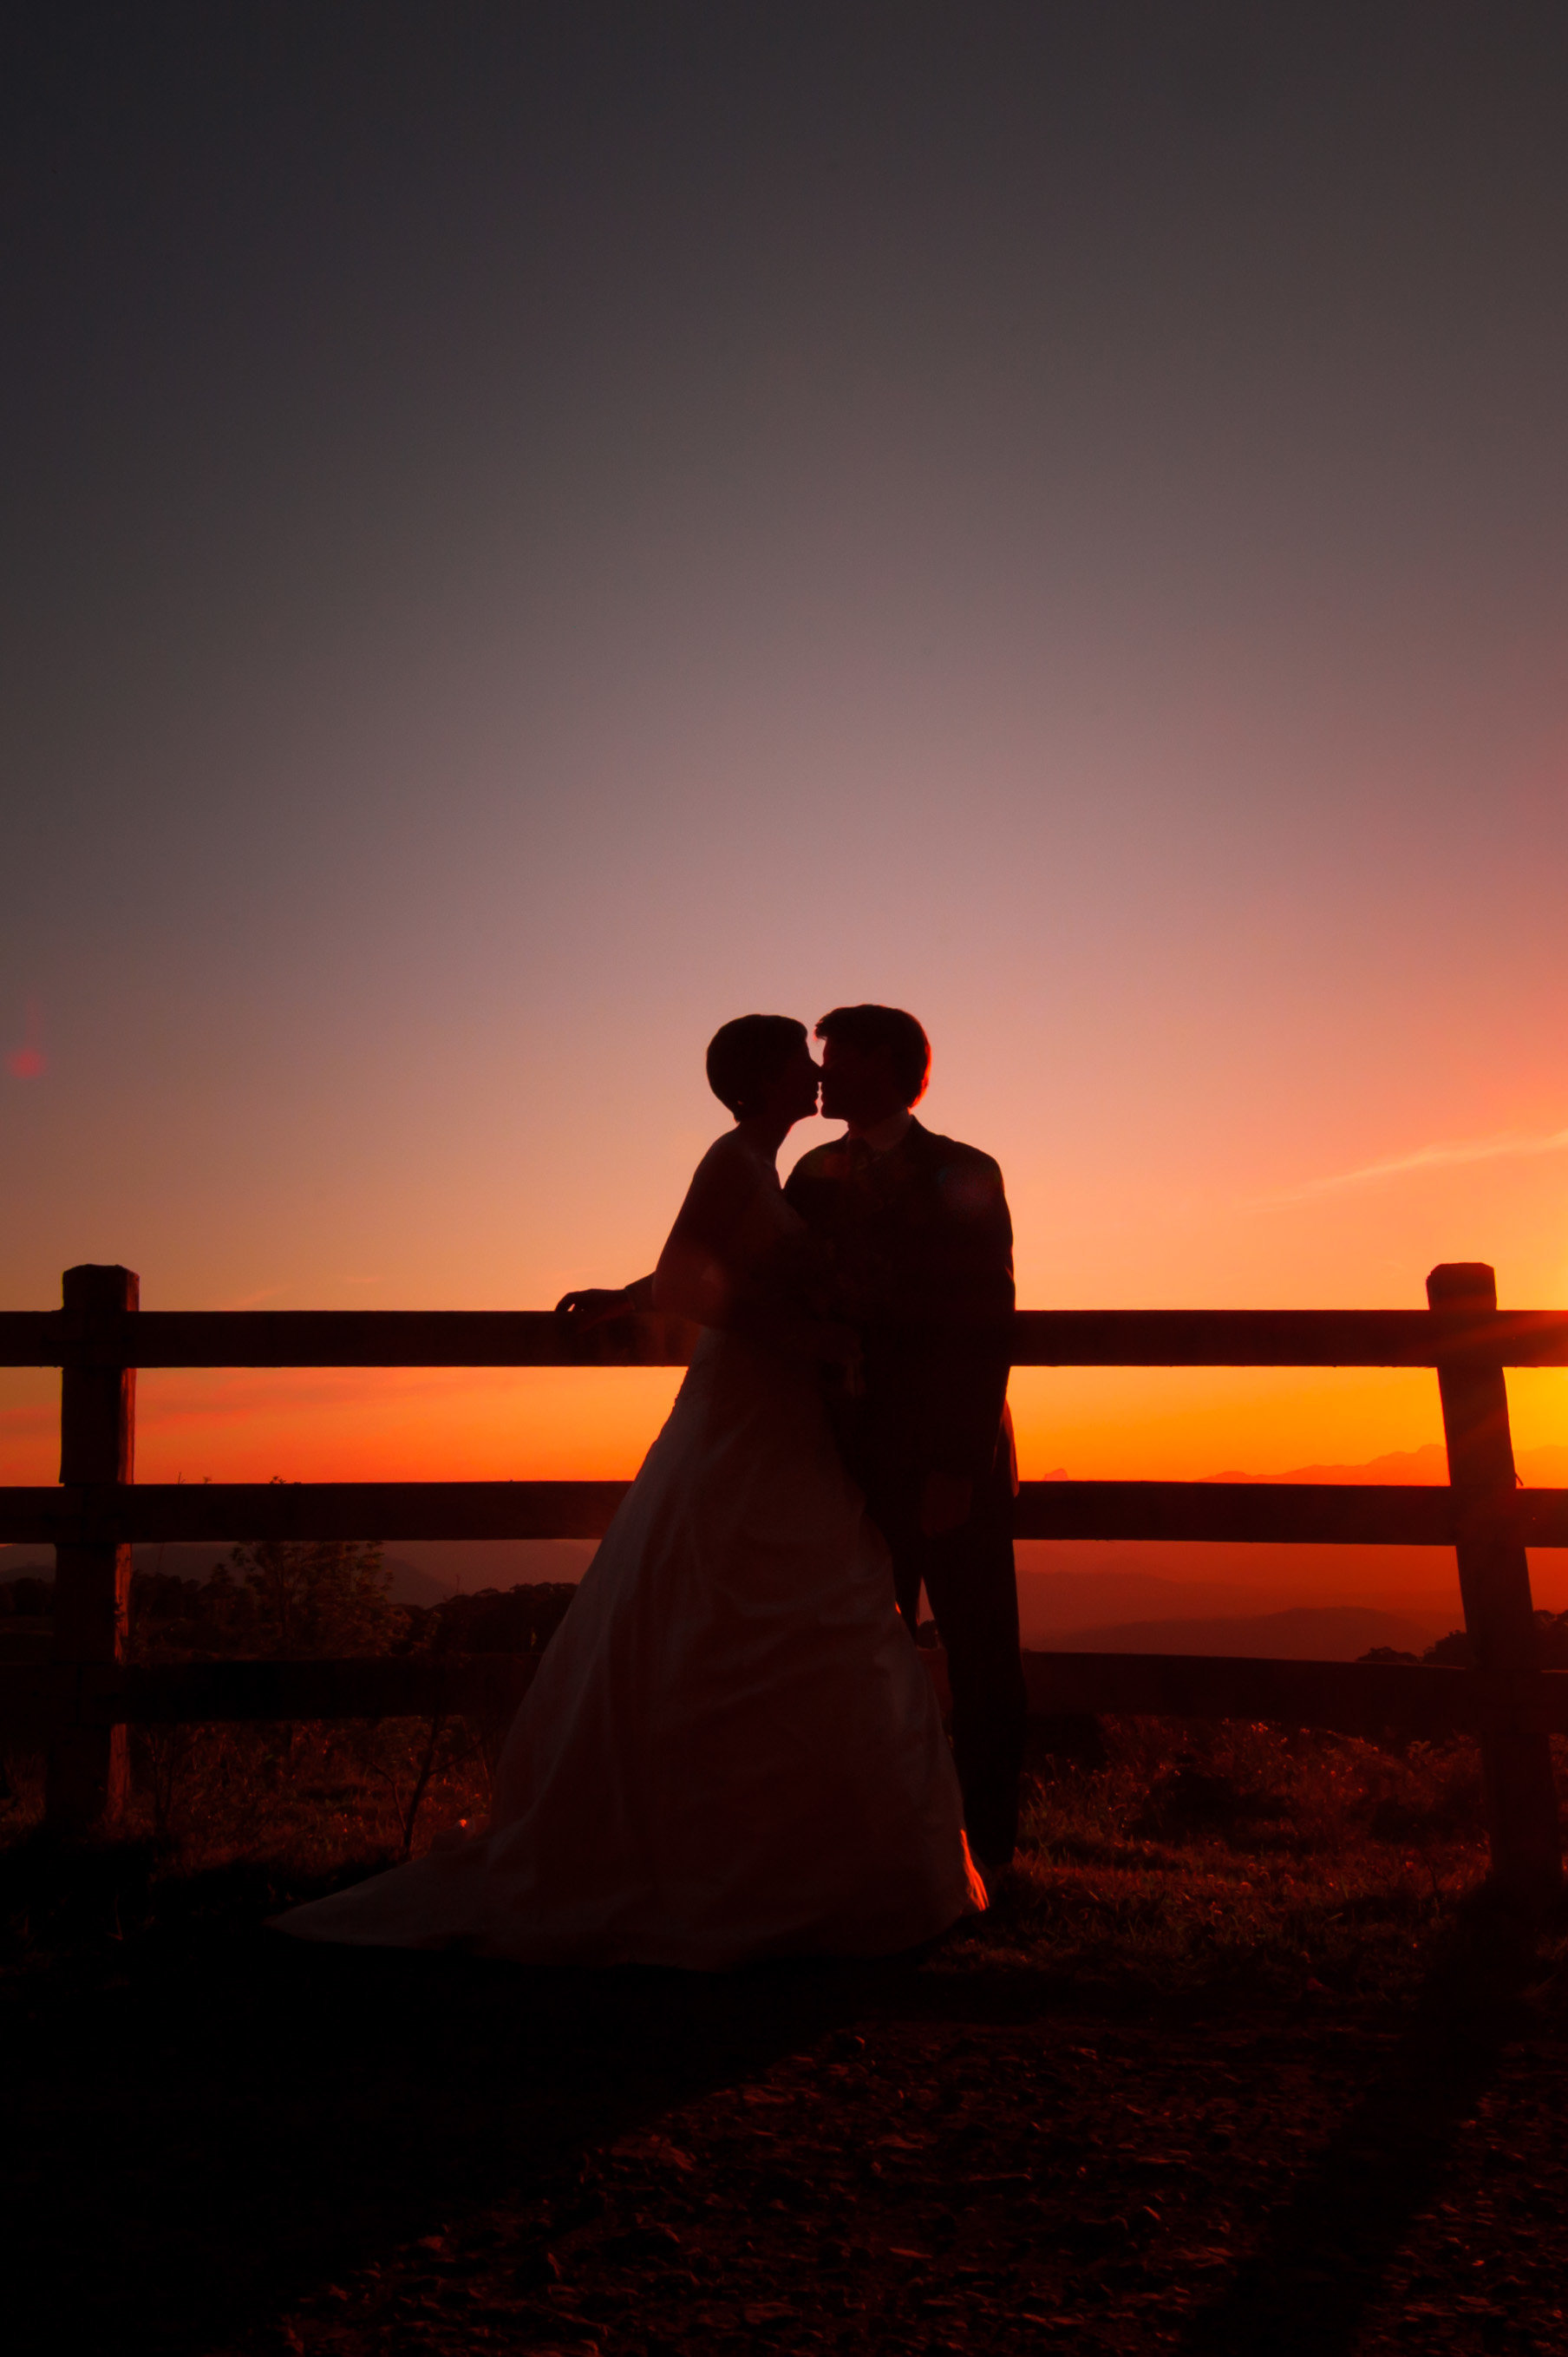 Sunset Oreillys Wedding Photographer Anna Osetroff